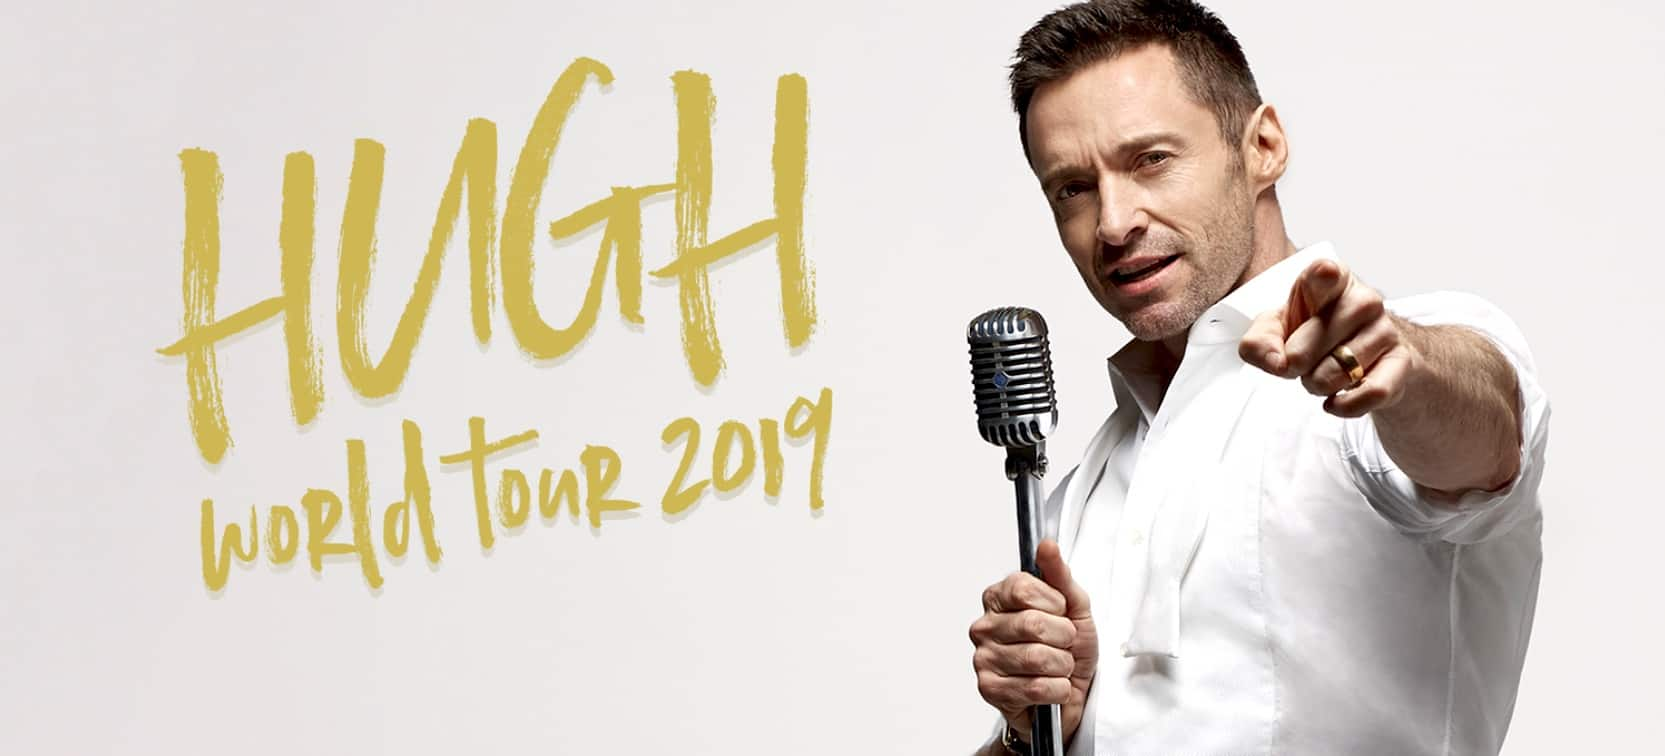 Hugh Jackman Tour Dates Tickets